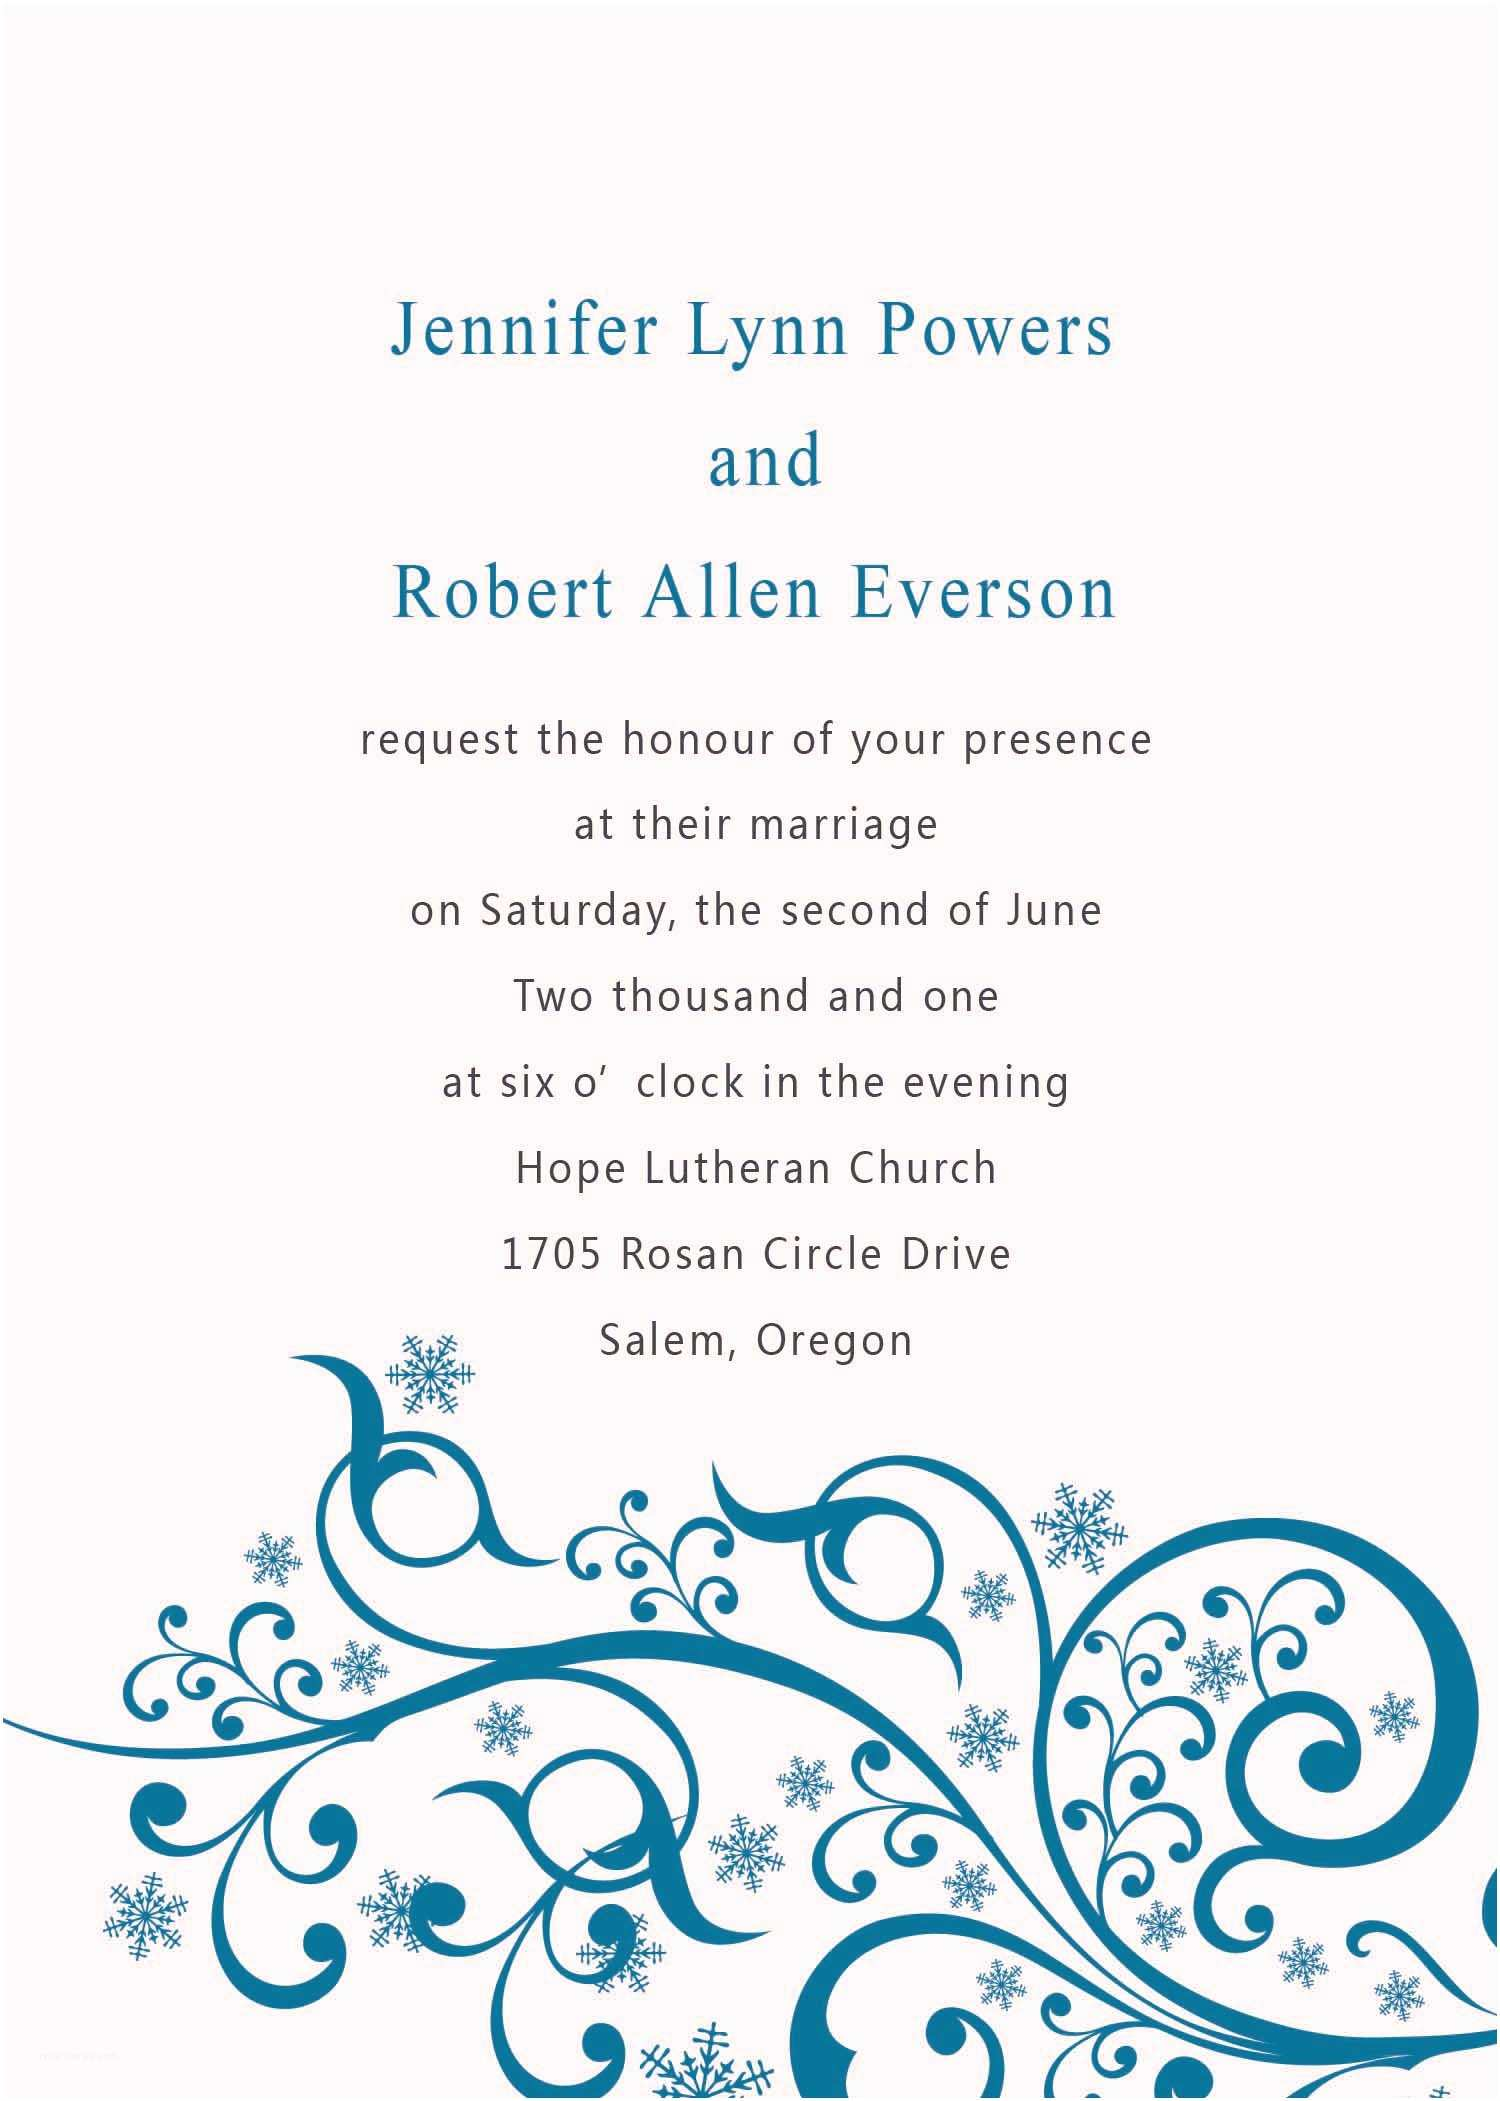 How to Design Wedding Invitations Tips Wedding Invitation Templates Word Ideas with Smart